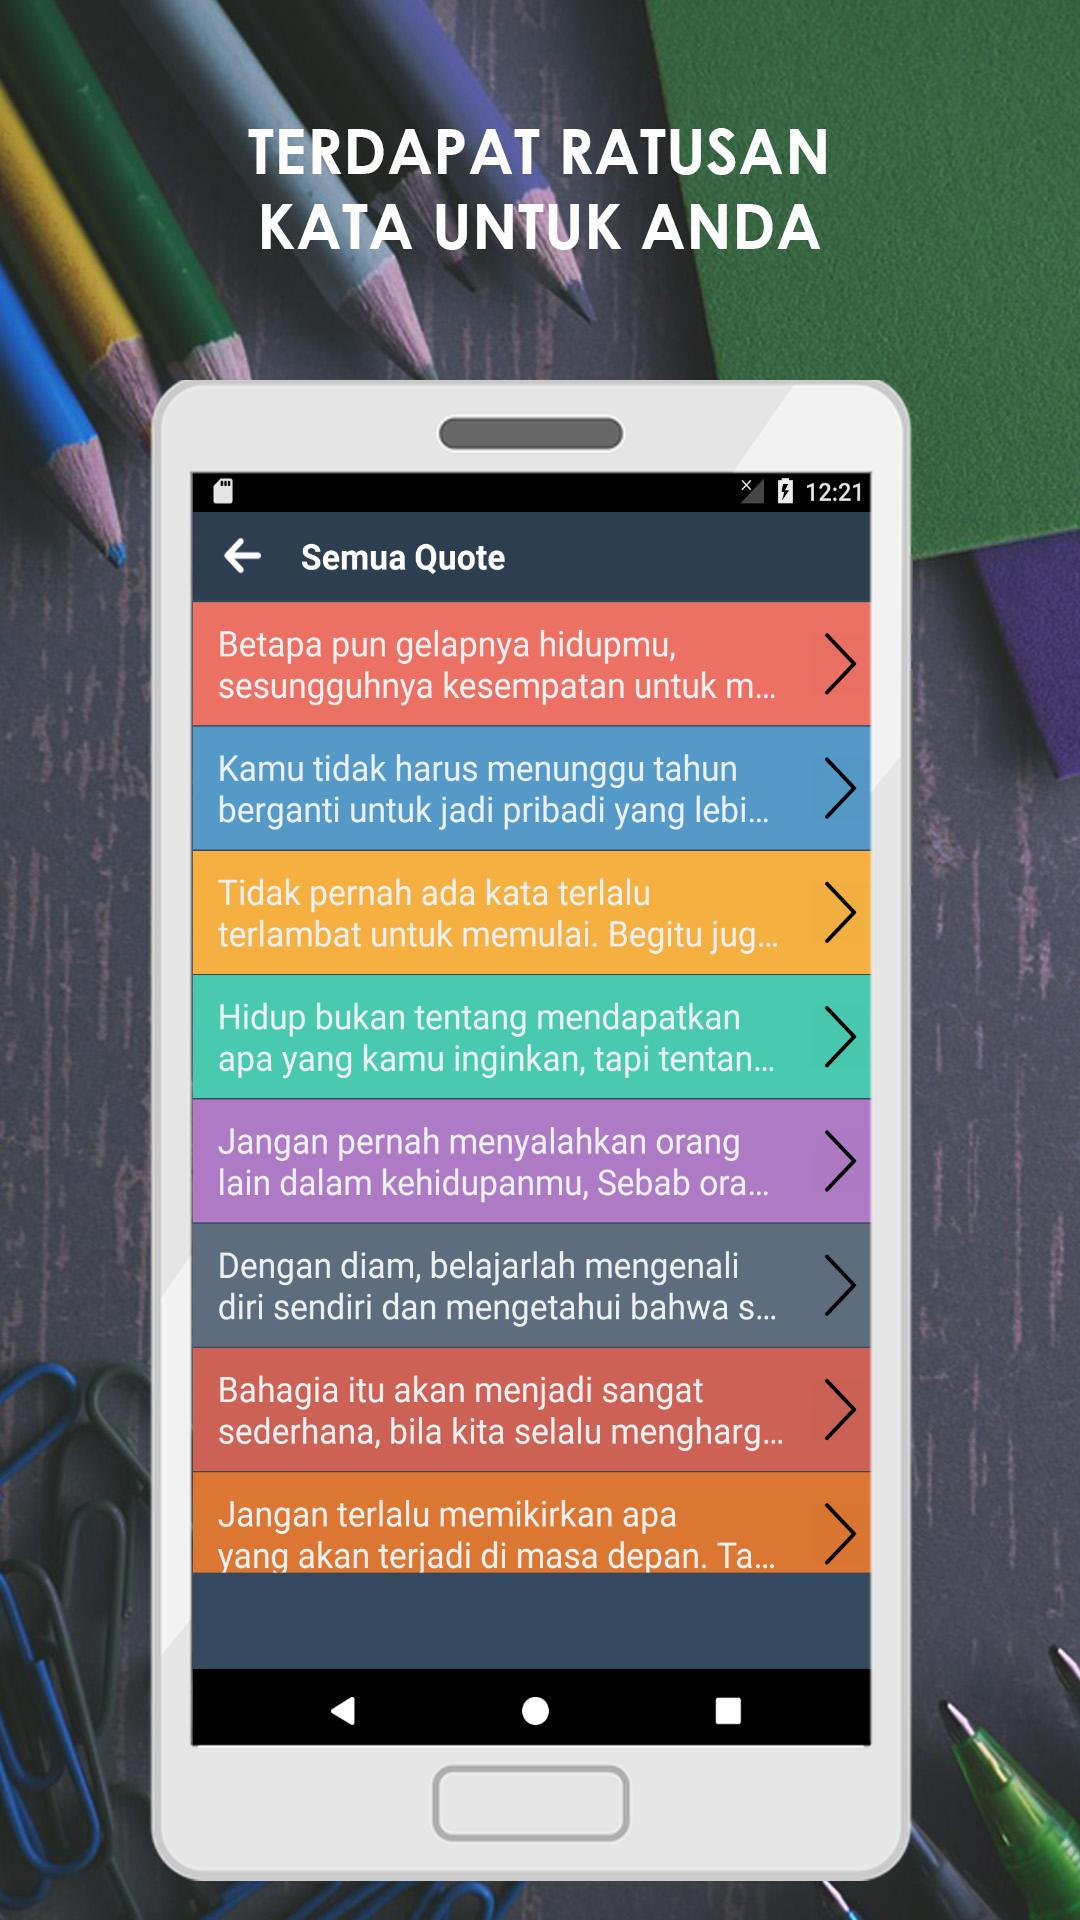 Kata Kata Filosofi Kehidupan for Android APK Download